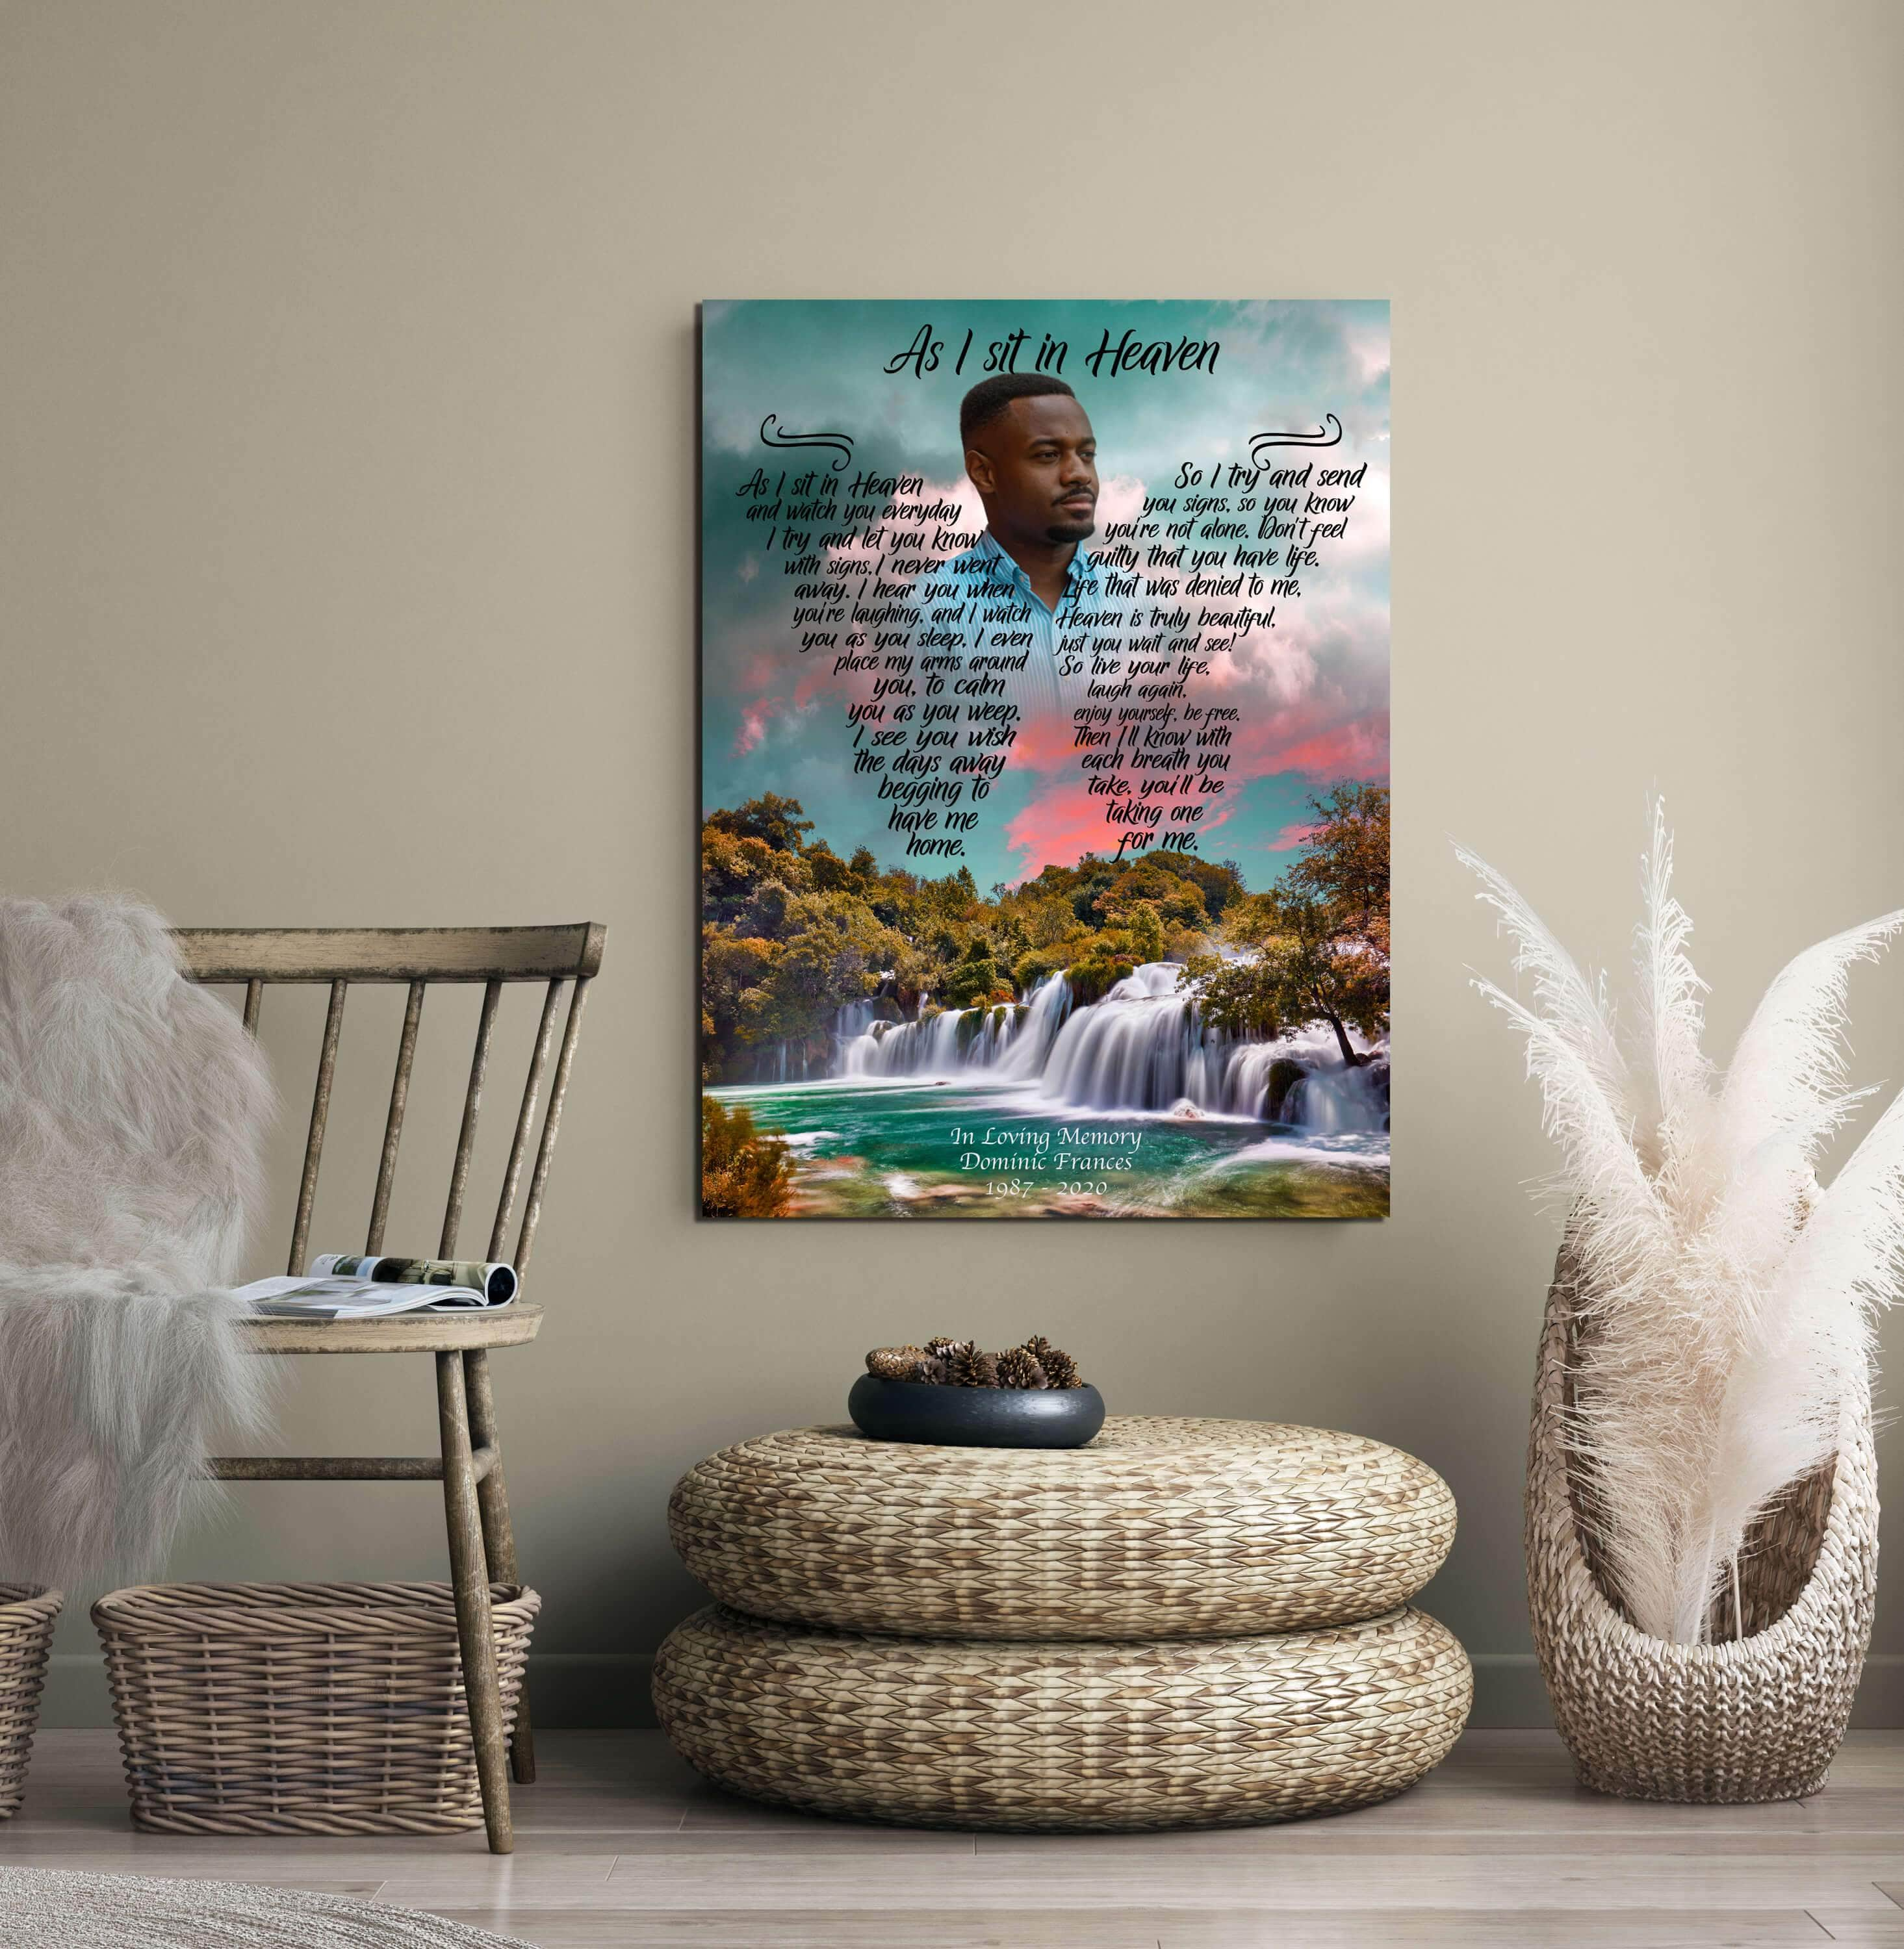 As I Sit In Heaven - Escape To Blue Ridge - Personalized Canvas